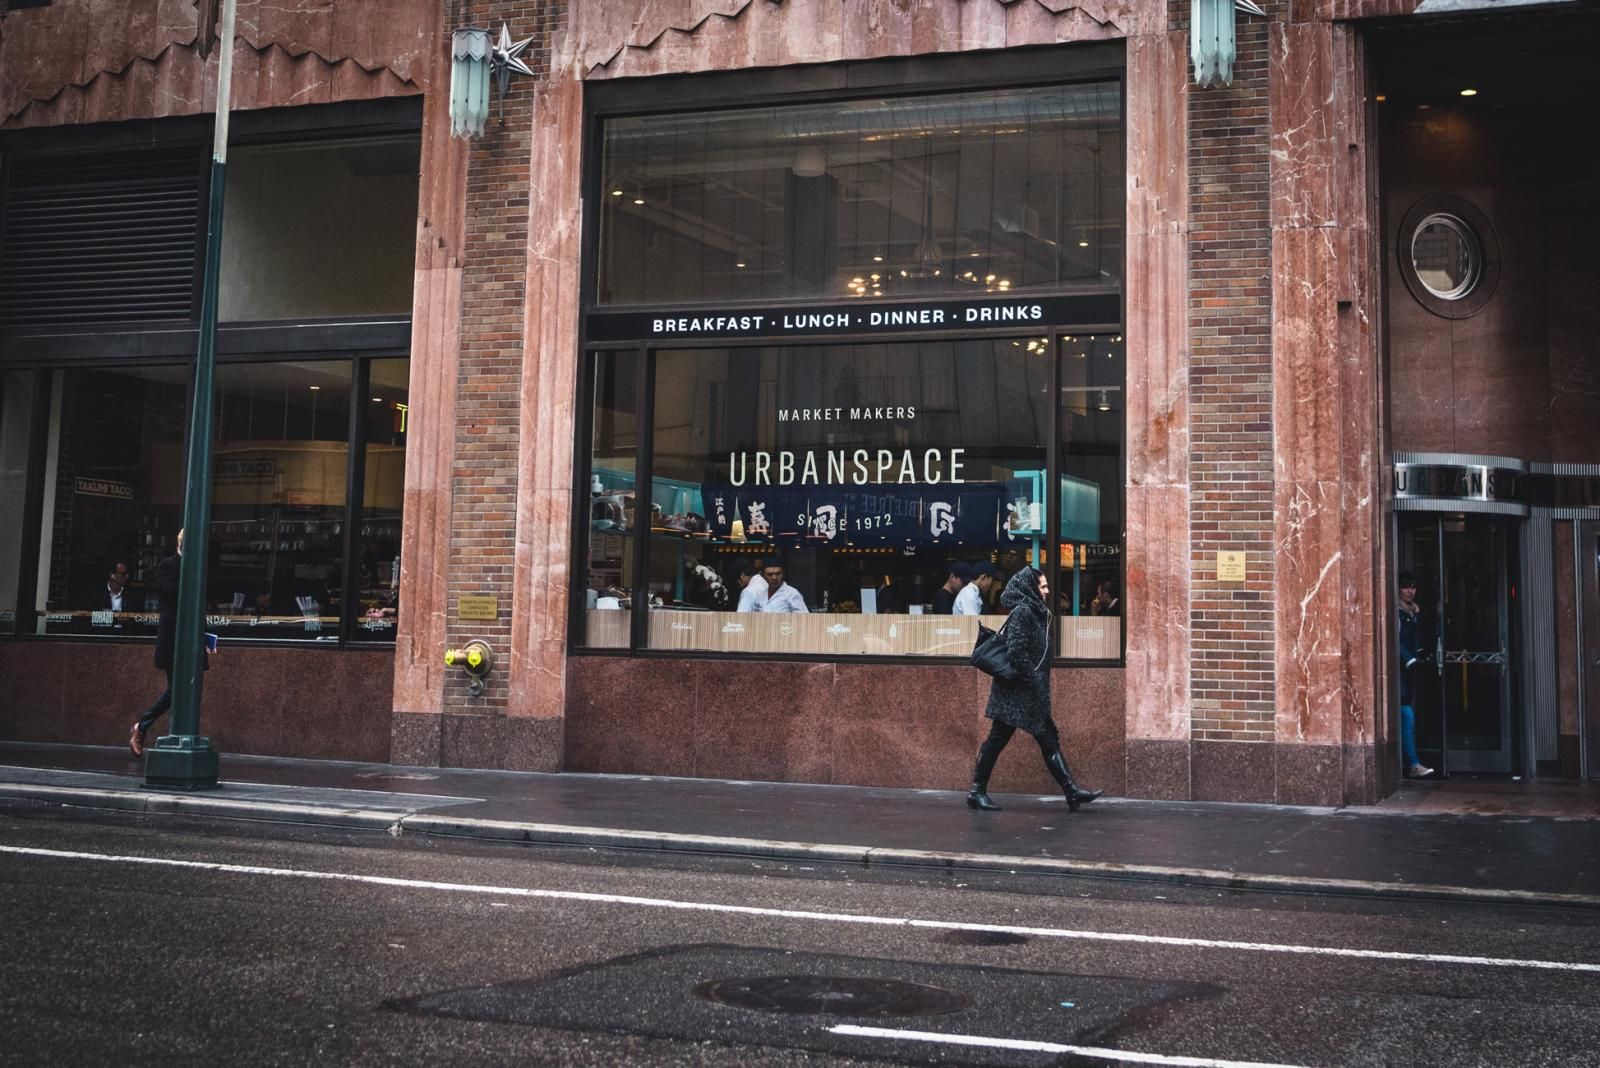 Urbanspace 570 Lex – The Newest Food Hall Paradise in Midtown East